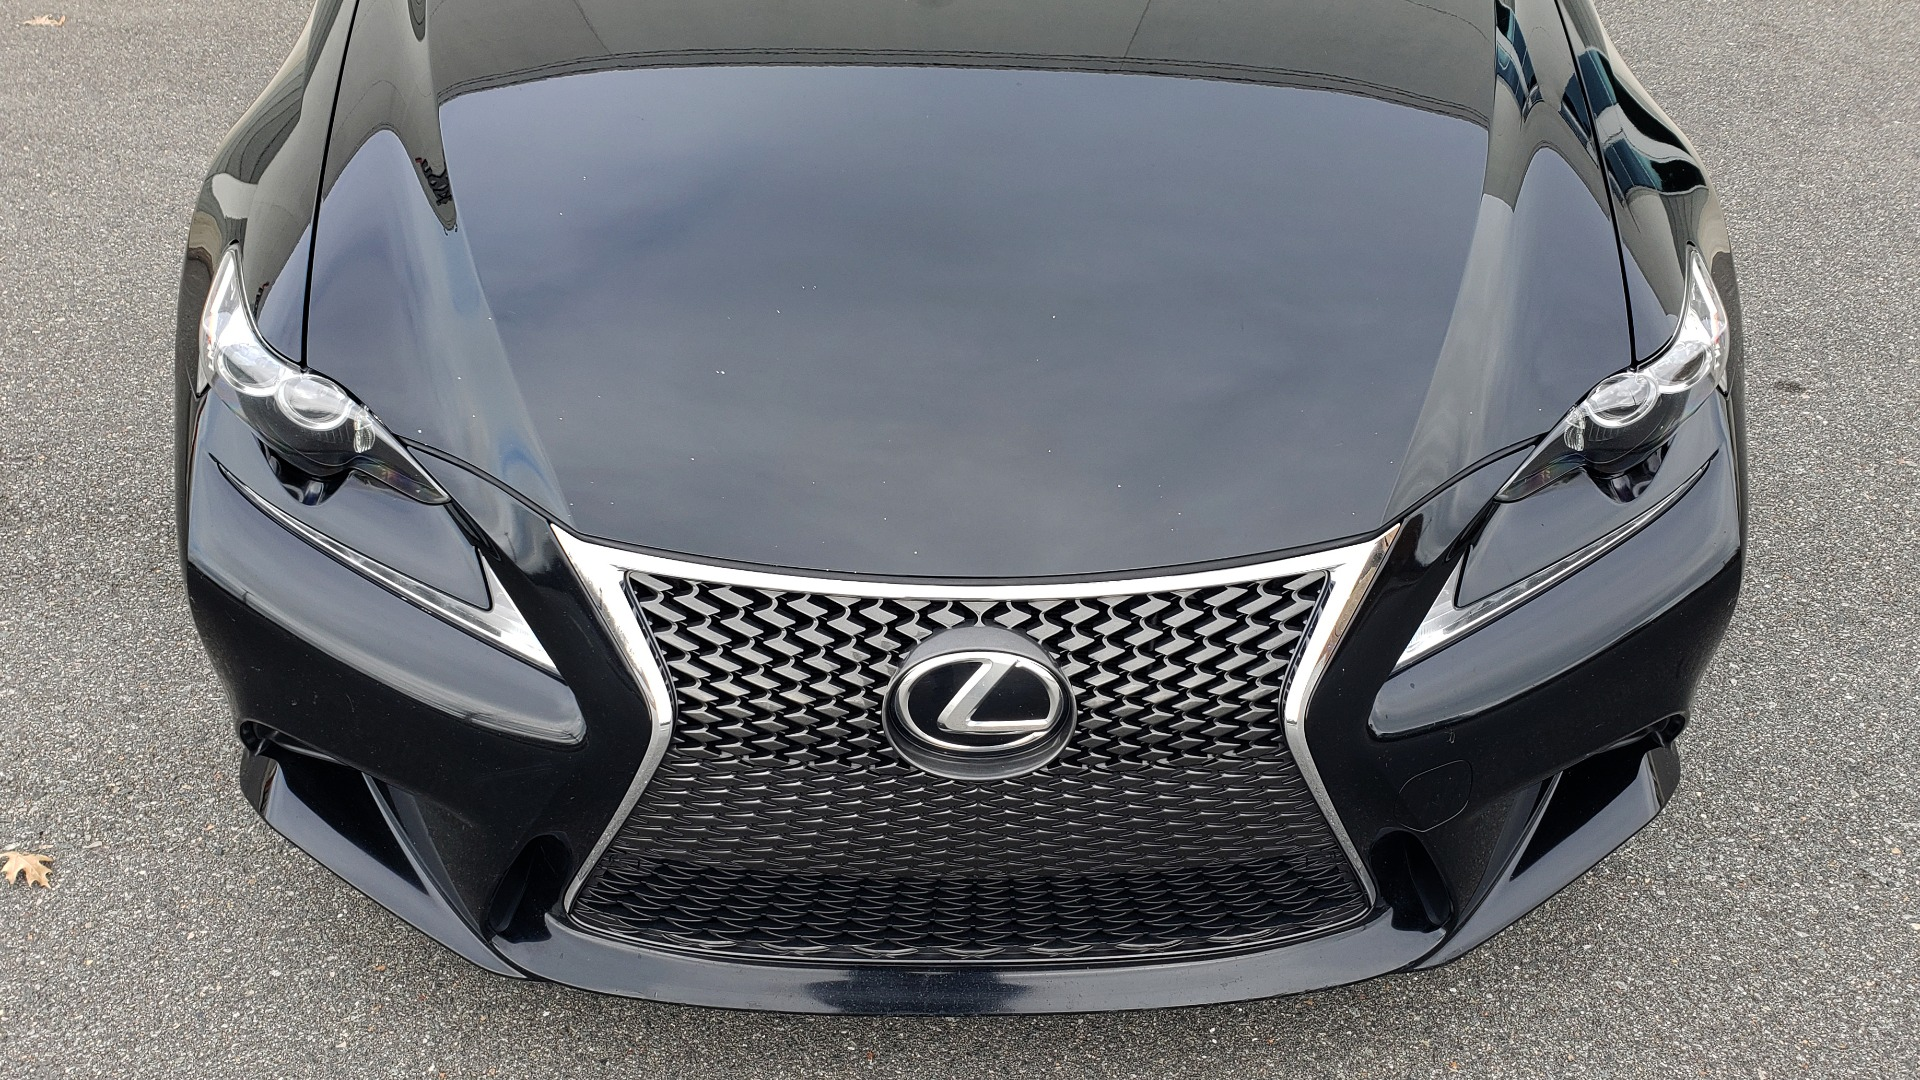 Used 2015 Lexus IS 250 F-SPORT / BLIND SPOT MON / SUNROOF / REARVIEW for sale Sold at Formula Imports in Charlotte NC 28227 21